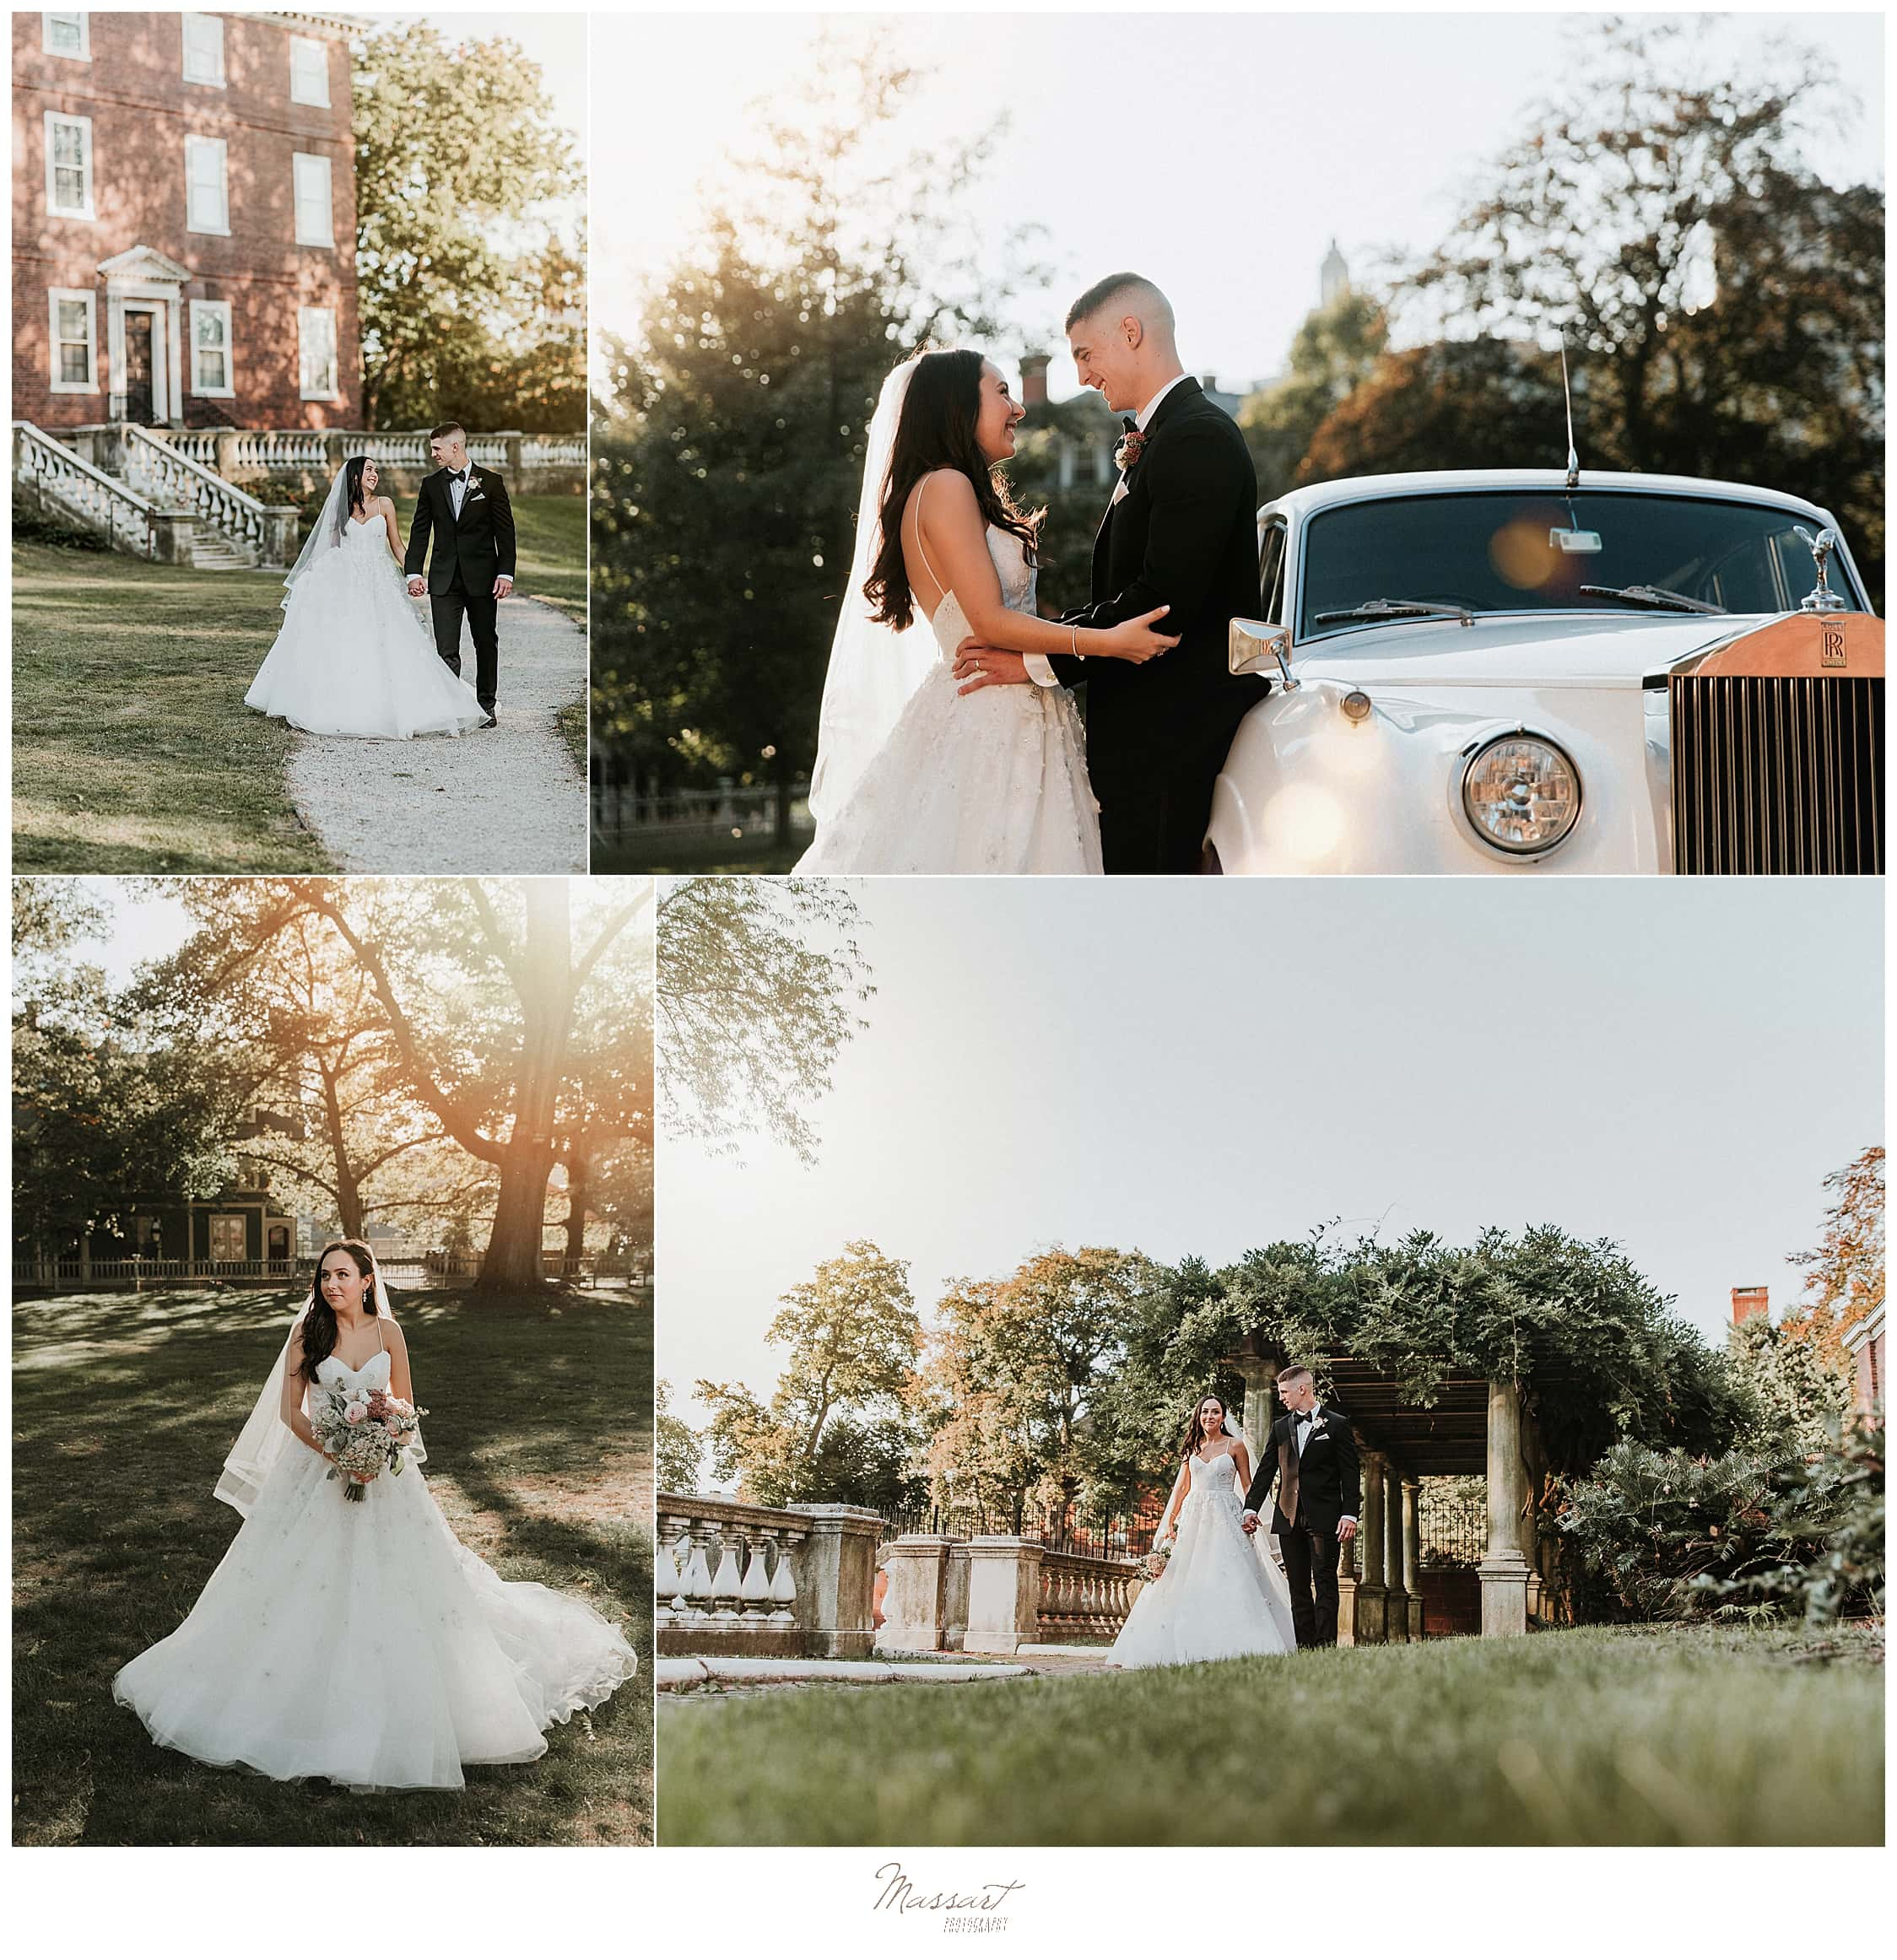 Rhode Island wedding photos with vintage classic car photographed by wedding photographers Massart Photography